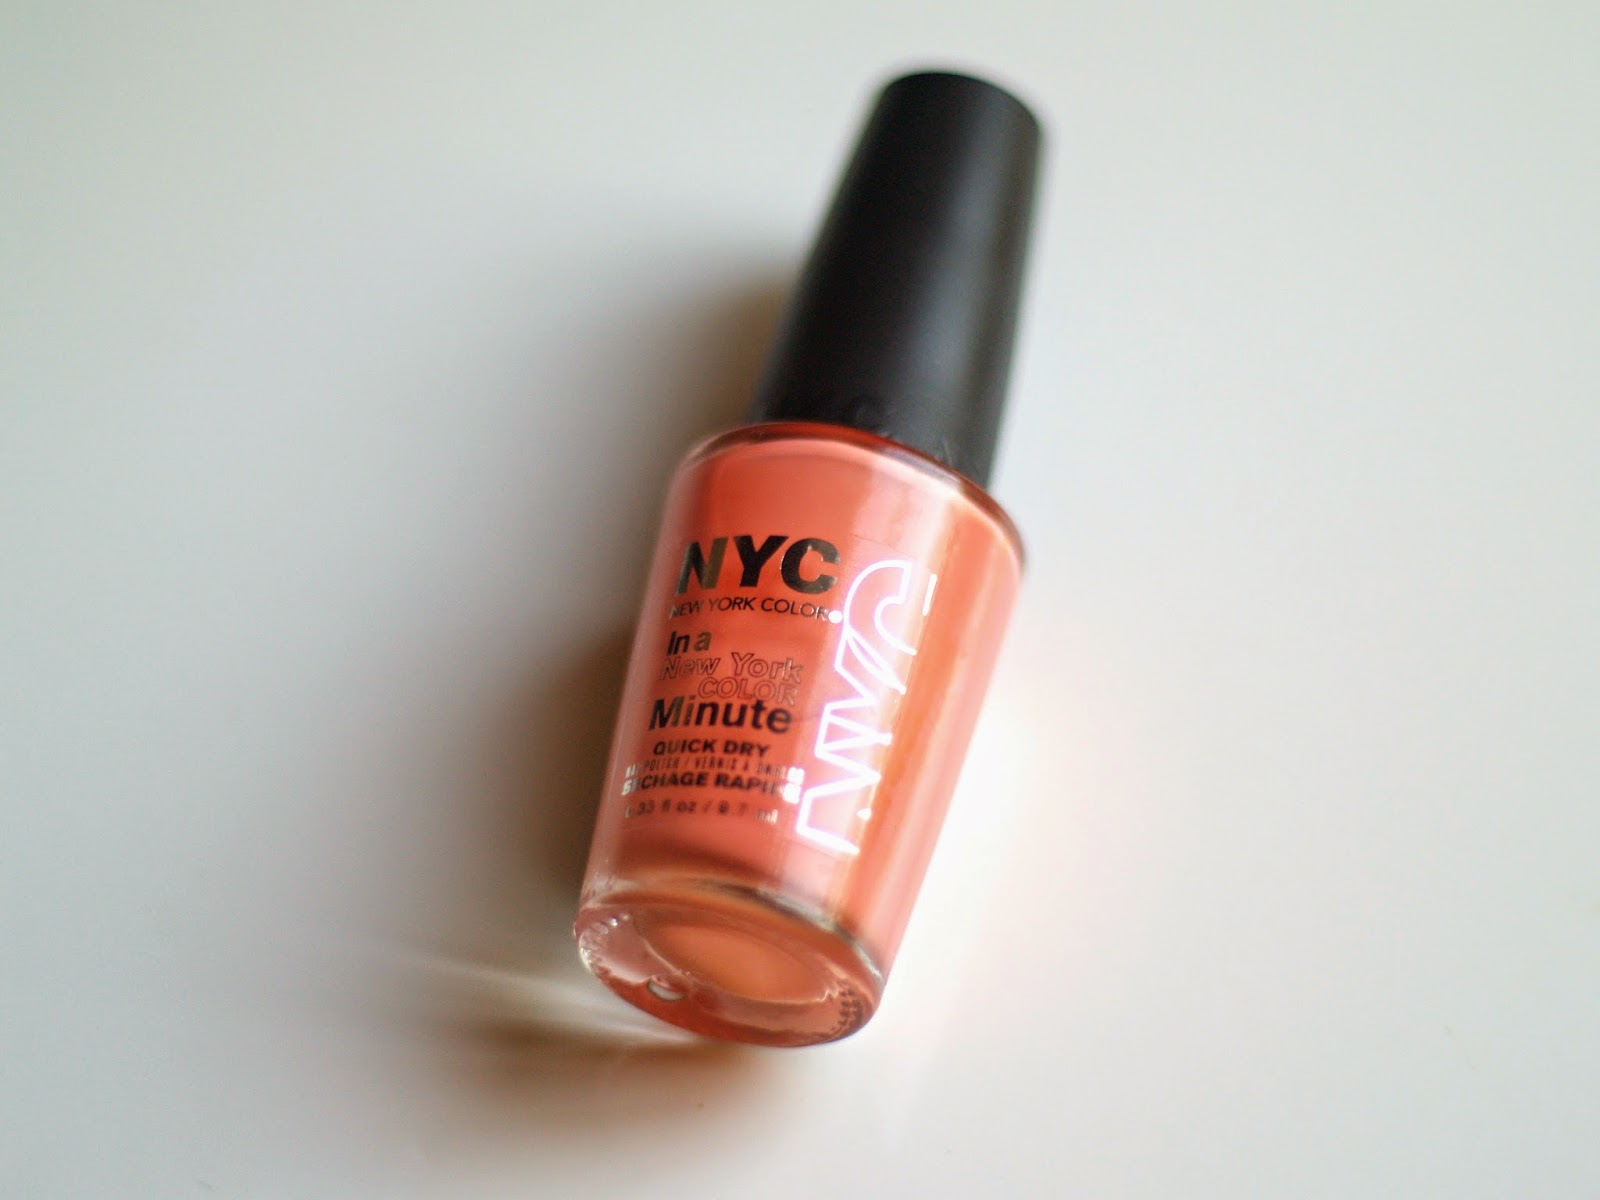 NYC In A New York Color Minute Quick Dry Nail Polish in Hamptons Peach